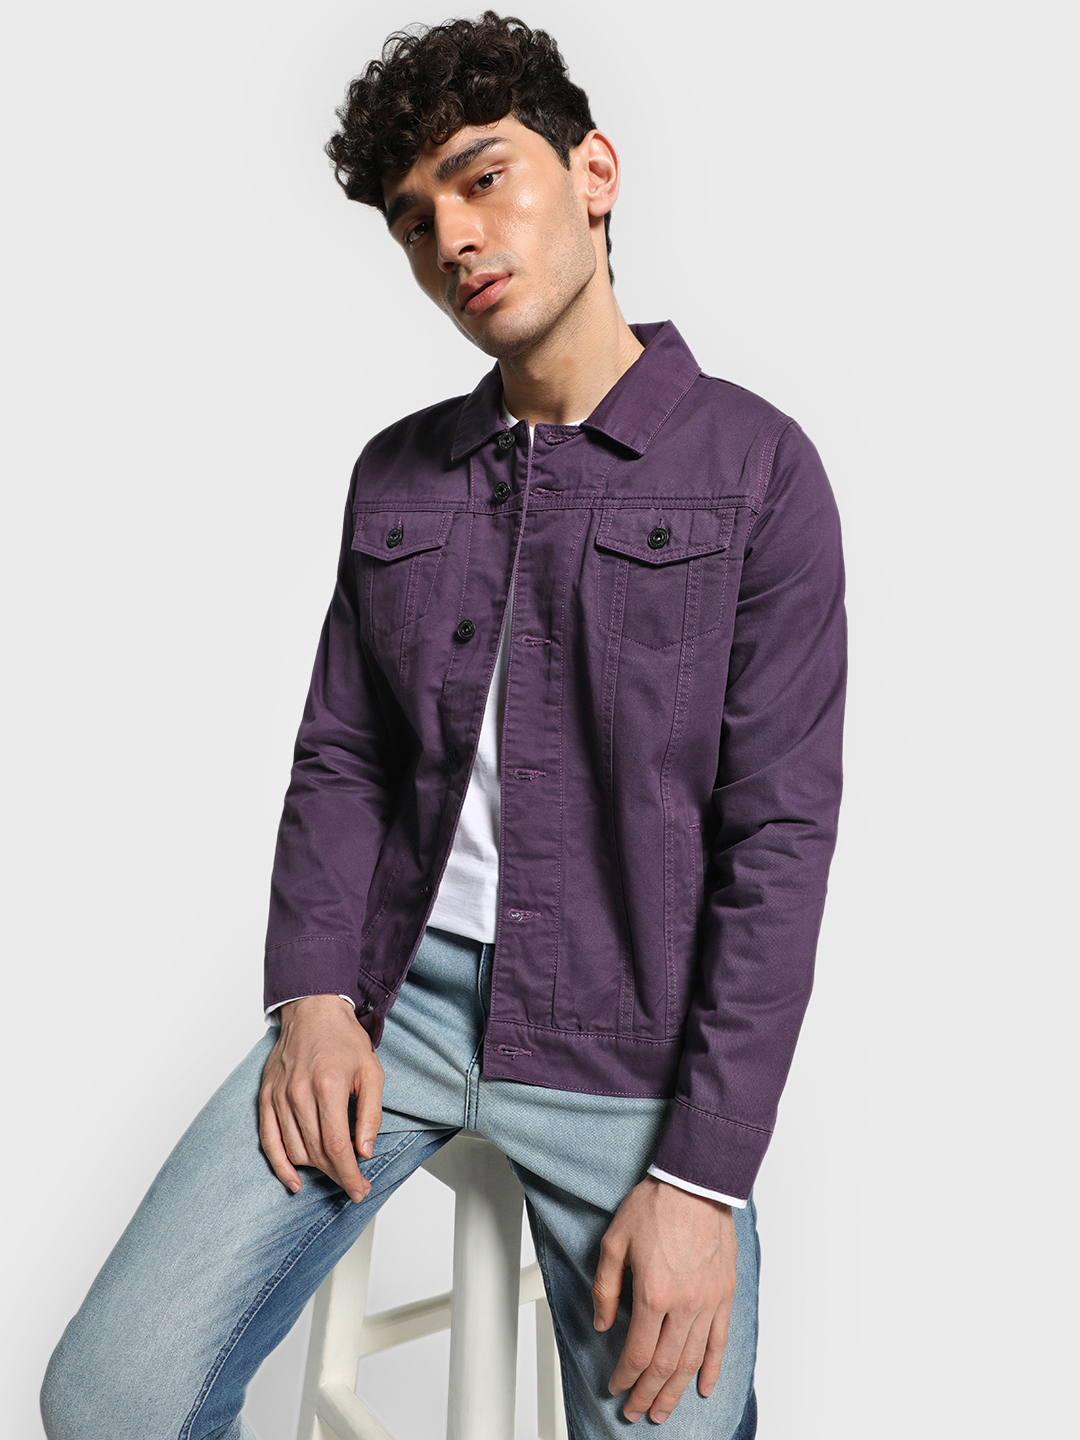 Blue Saint Purple Overdyed Long Sleeve Denim Jacket 1